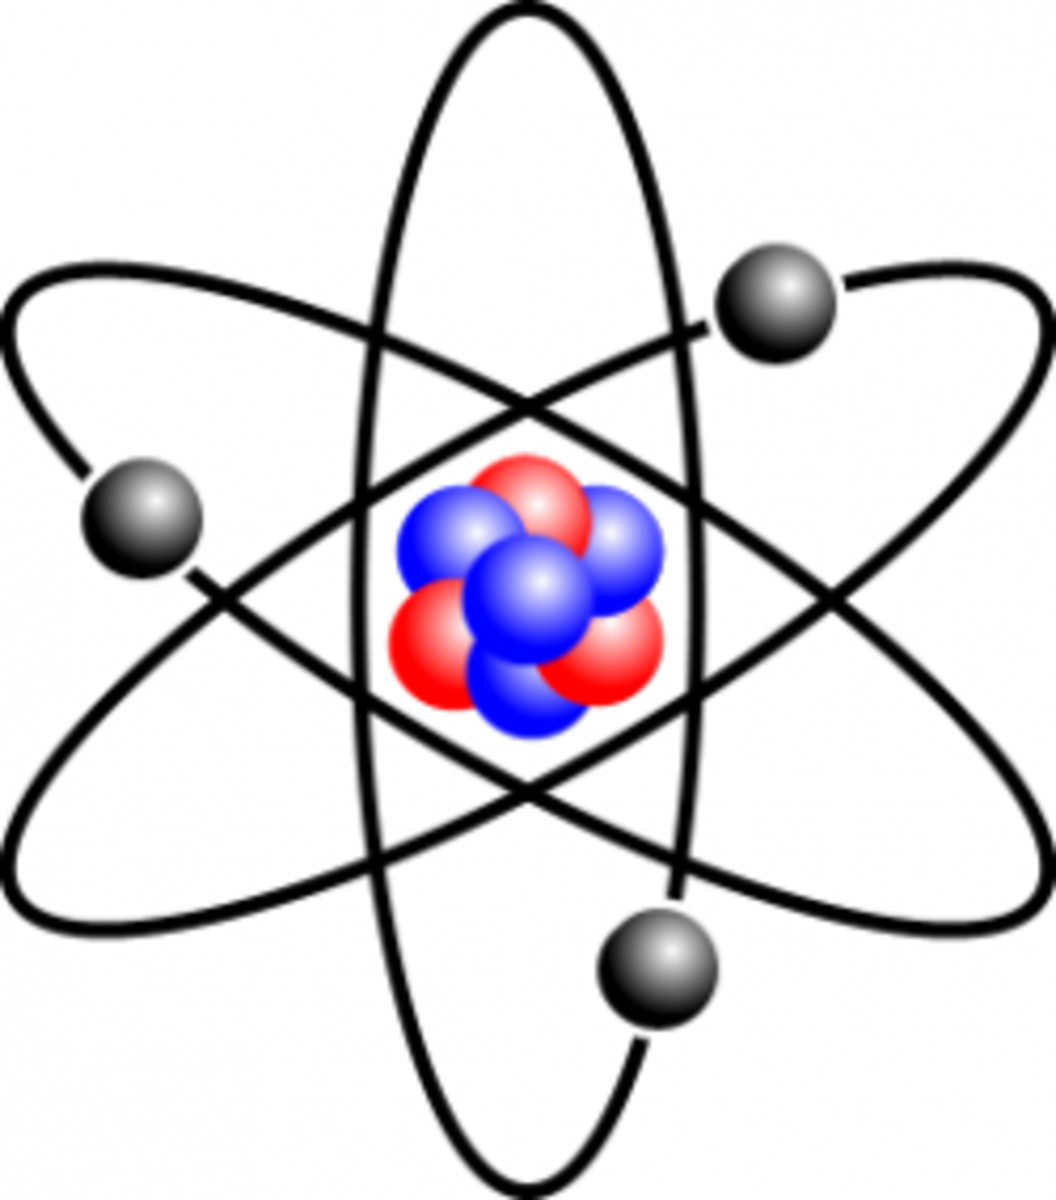 Image of lithium atom by Halfdan, under Creative Common license.